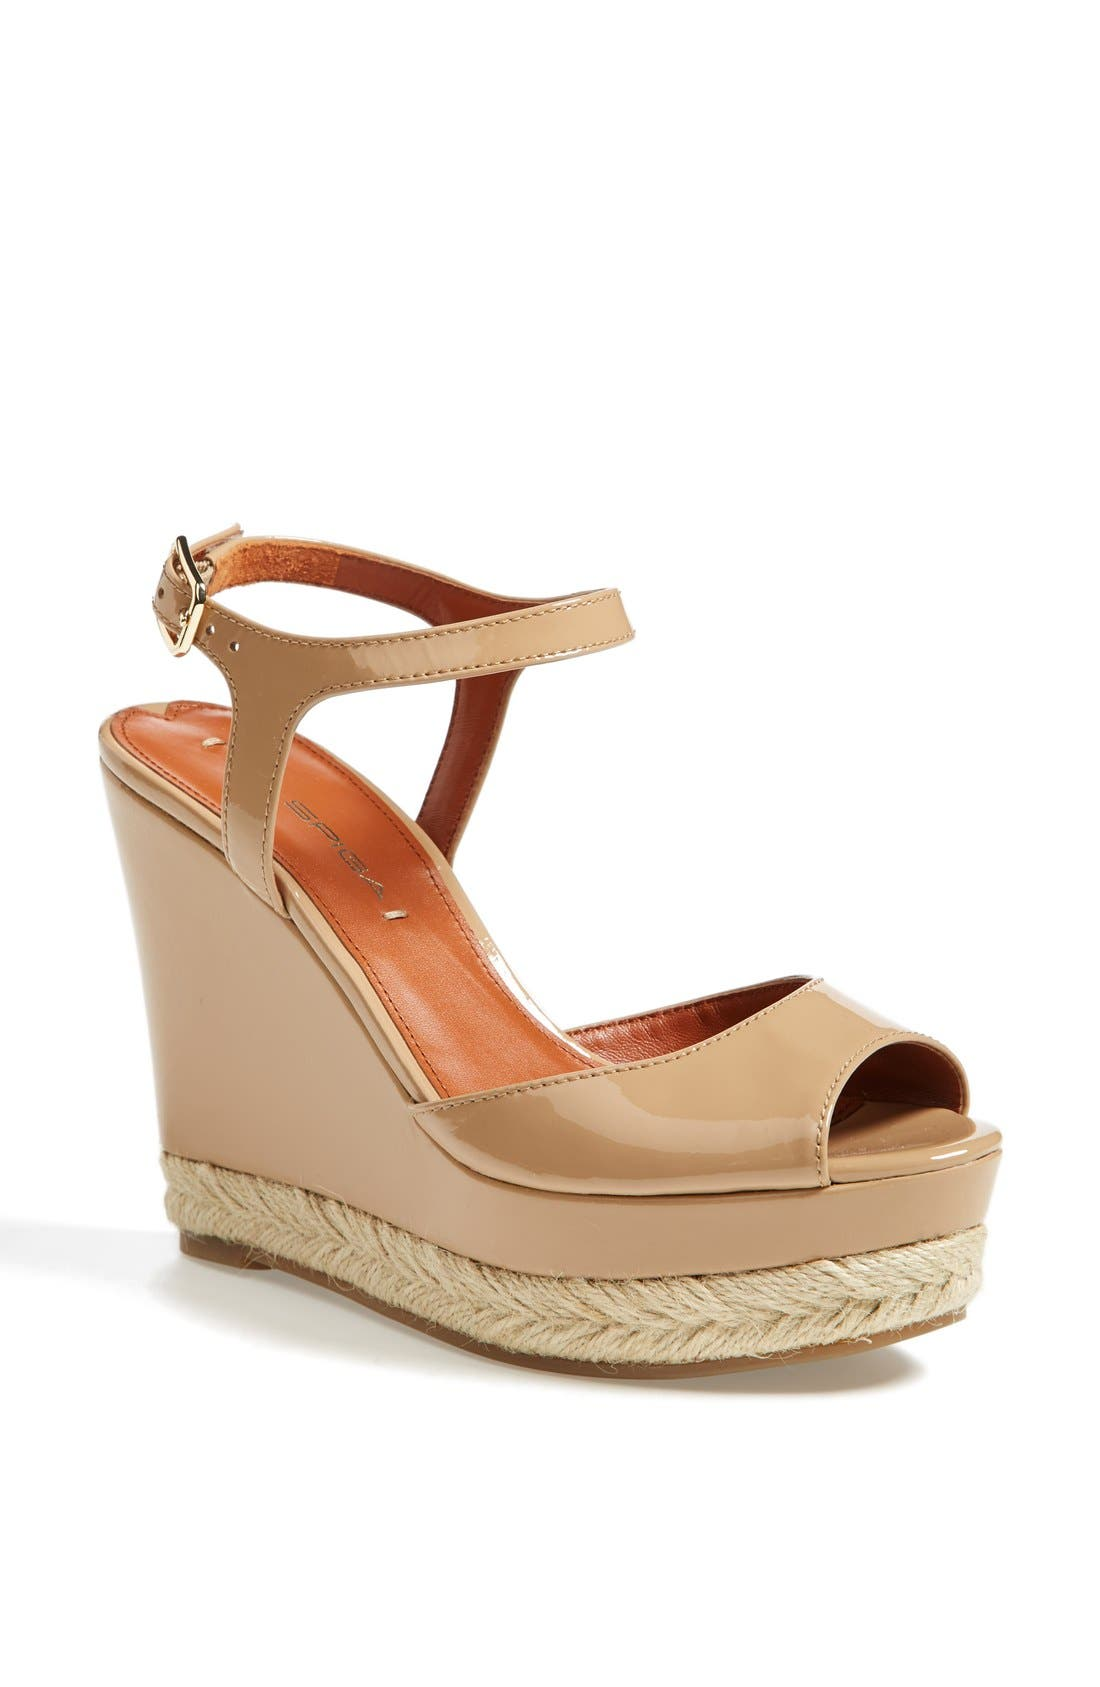 Alternate Image 1 Selected - Via Spiga 'Melia' Wedge Sandal